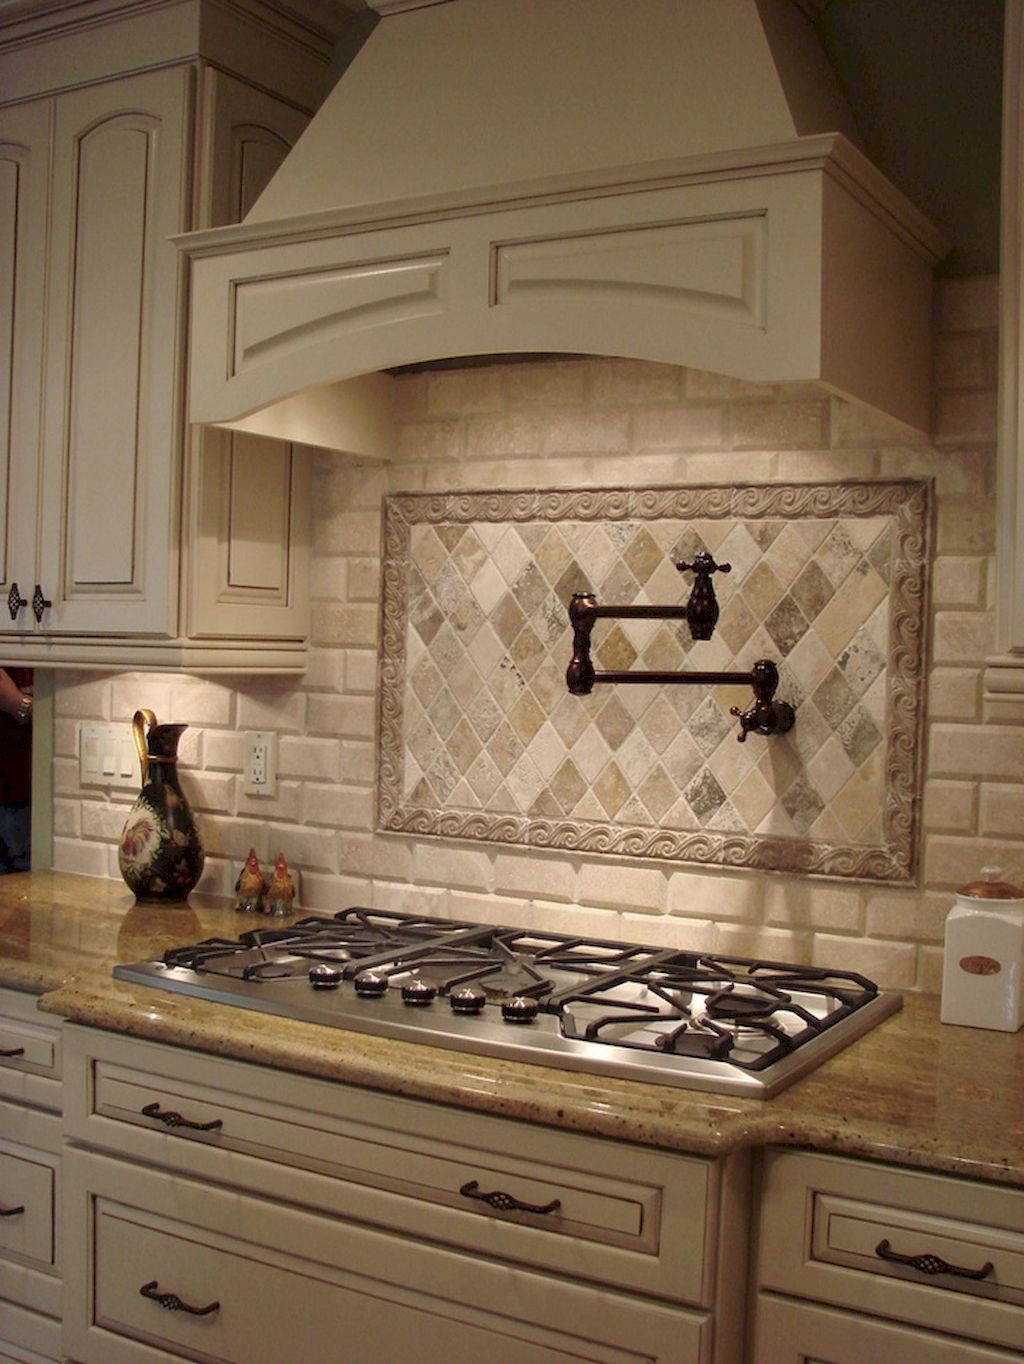 Fabulous French Country Kitchens Design Ideas 09